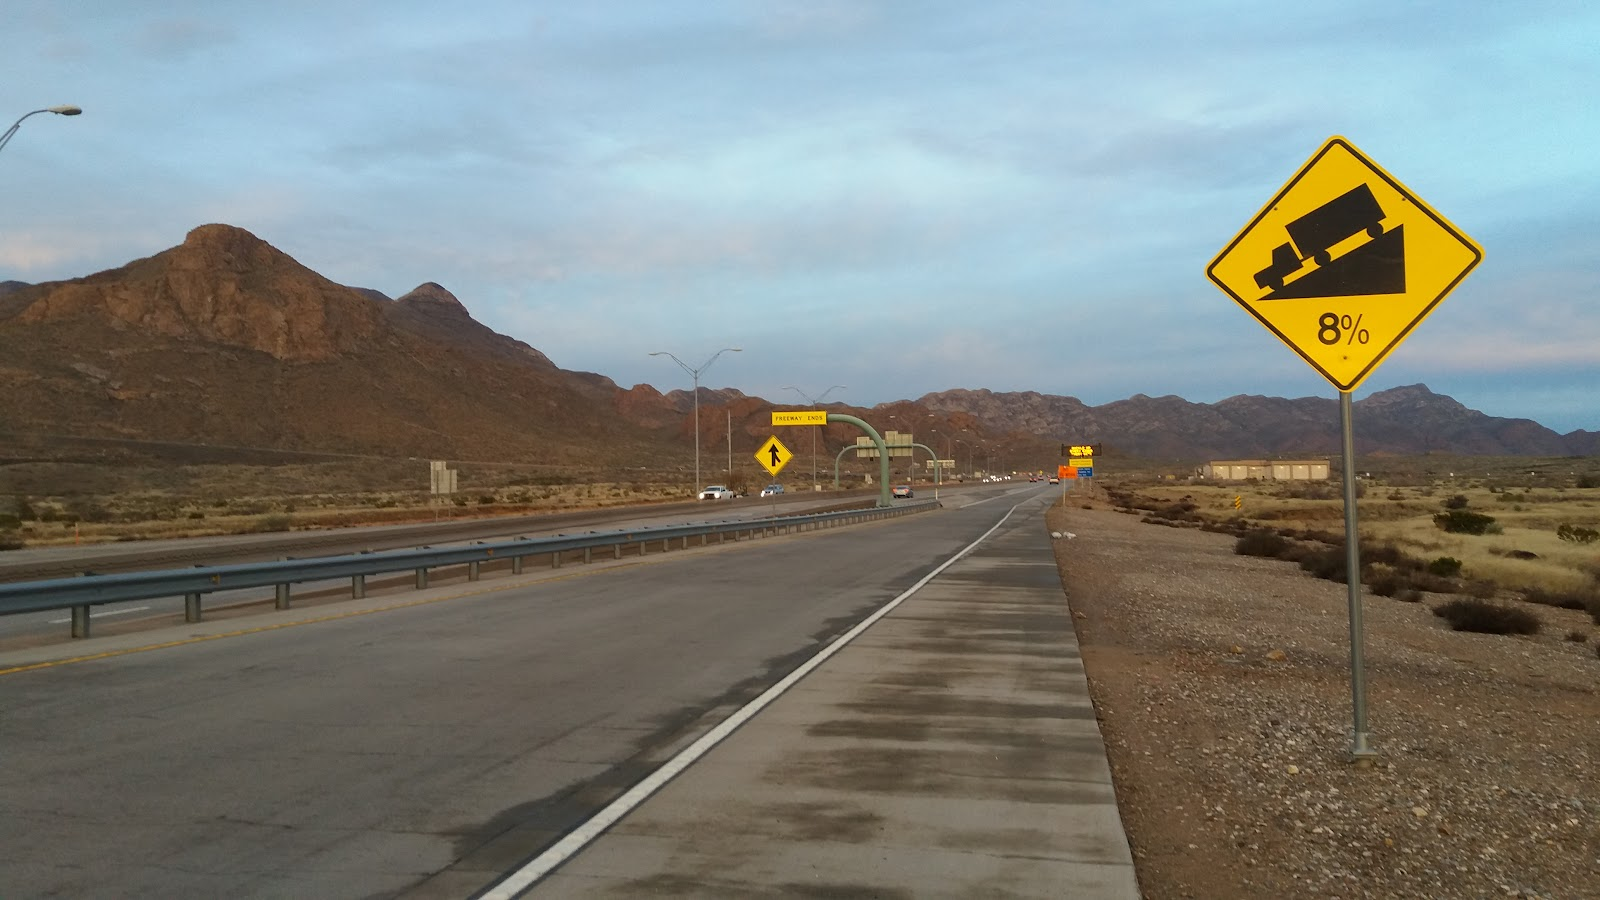 Bicycle climb Smugglers Pass East - Transmountain Drive - roadway, roadway shoulder, mountains